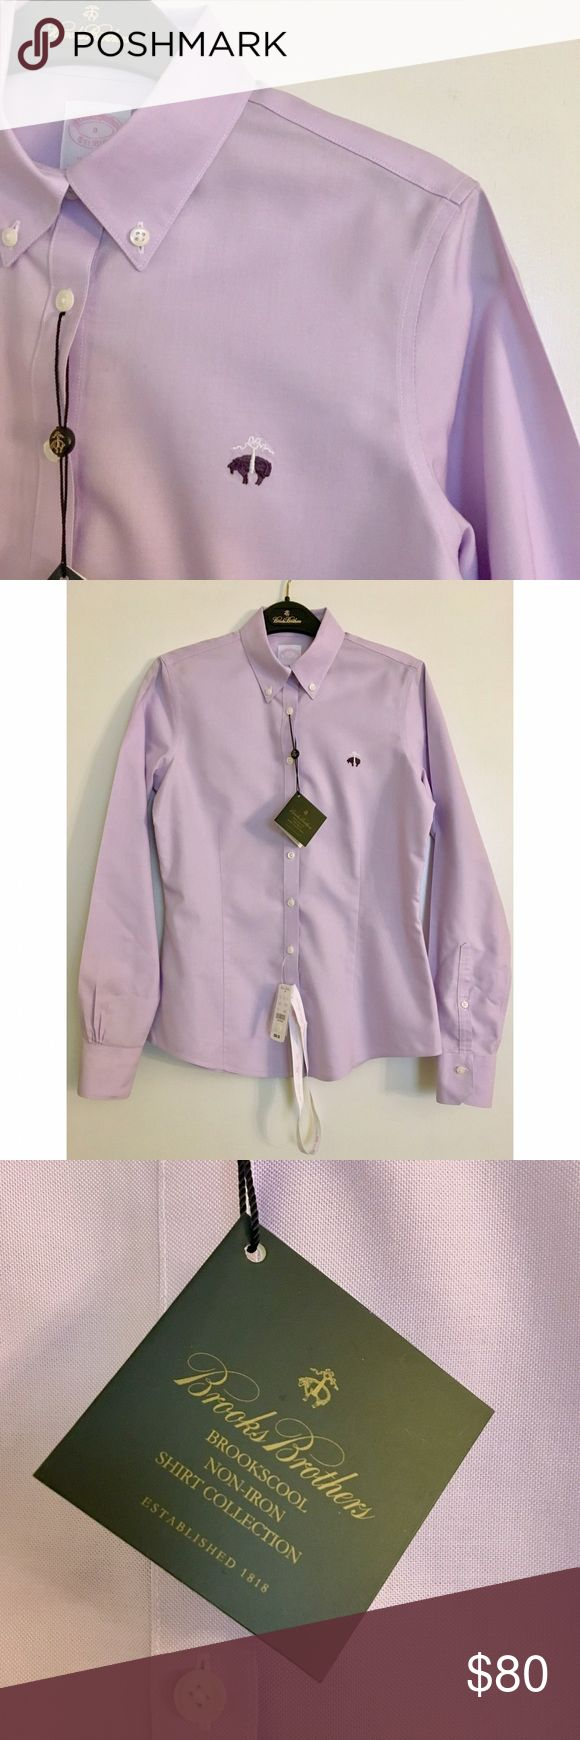 "NWT! Brooks Non-Iron Oxford Shirt New with tags! Brooks Brothers women's Oxford button-down collar shirt in non-iron Supima cotton, size 0 regular. Fit is ""Tailored"" fit, which is fitted and long enough to tuck in. Beautiful lavender color with purple and white Brooks Brothers logo. Retails for $98.50. Brooks Brothers Tops Button Down Shirts"